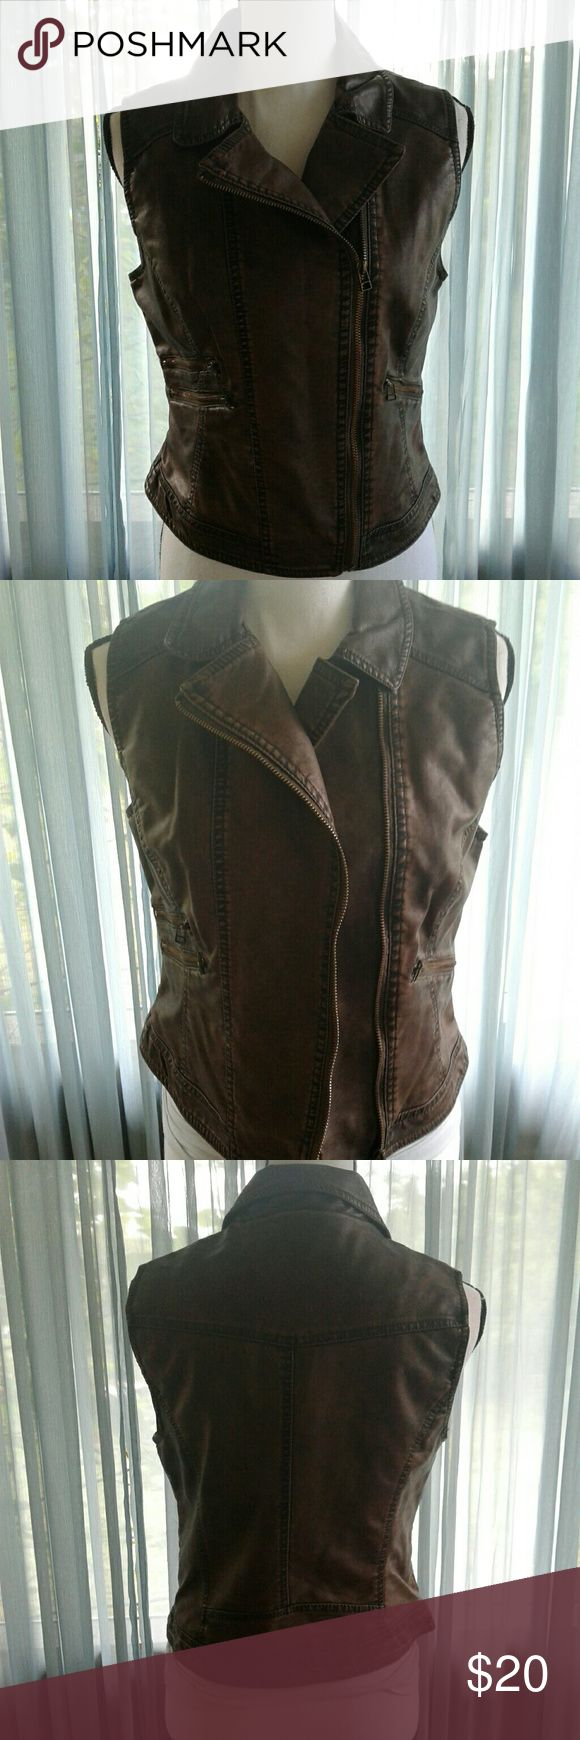 "Body central faux leather moto vest Women's like new brown/black acid wash looking body central moto vest size Medium. 2 front zipper pockets on right side, one zip pocket on left. Measurements SS 14"" Chest 18"" length 21"". Beautiful vest! Thanks for looking! Bundle to save! Body Central Tops"